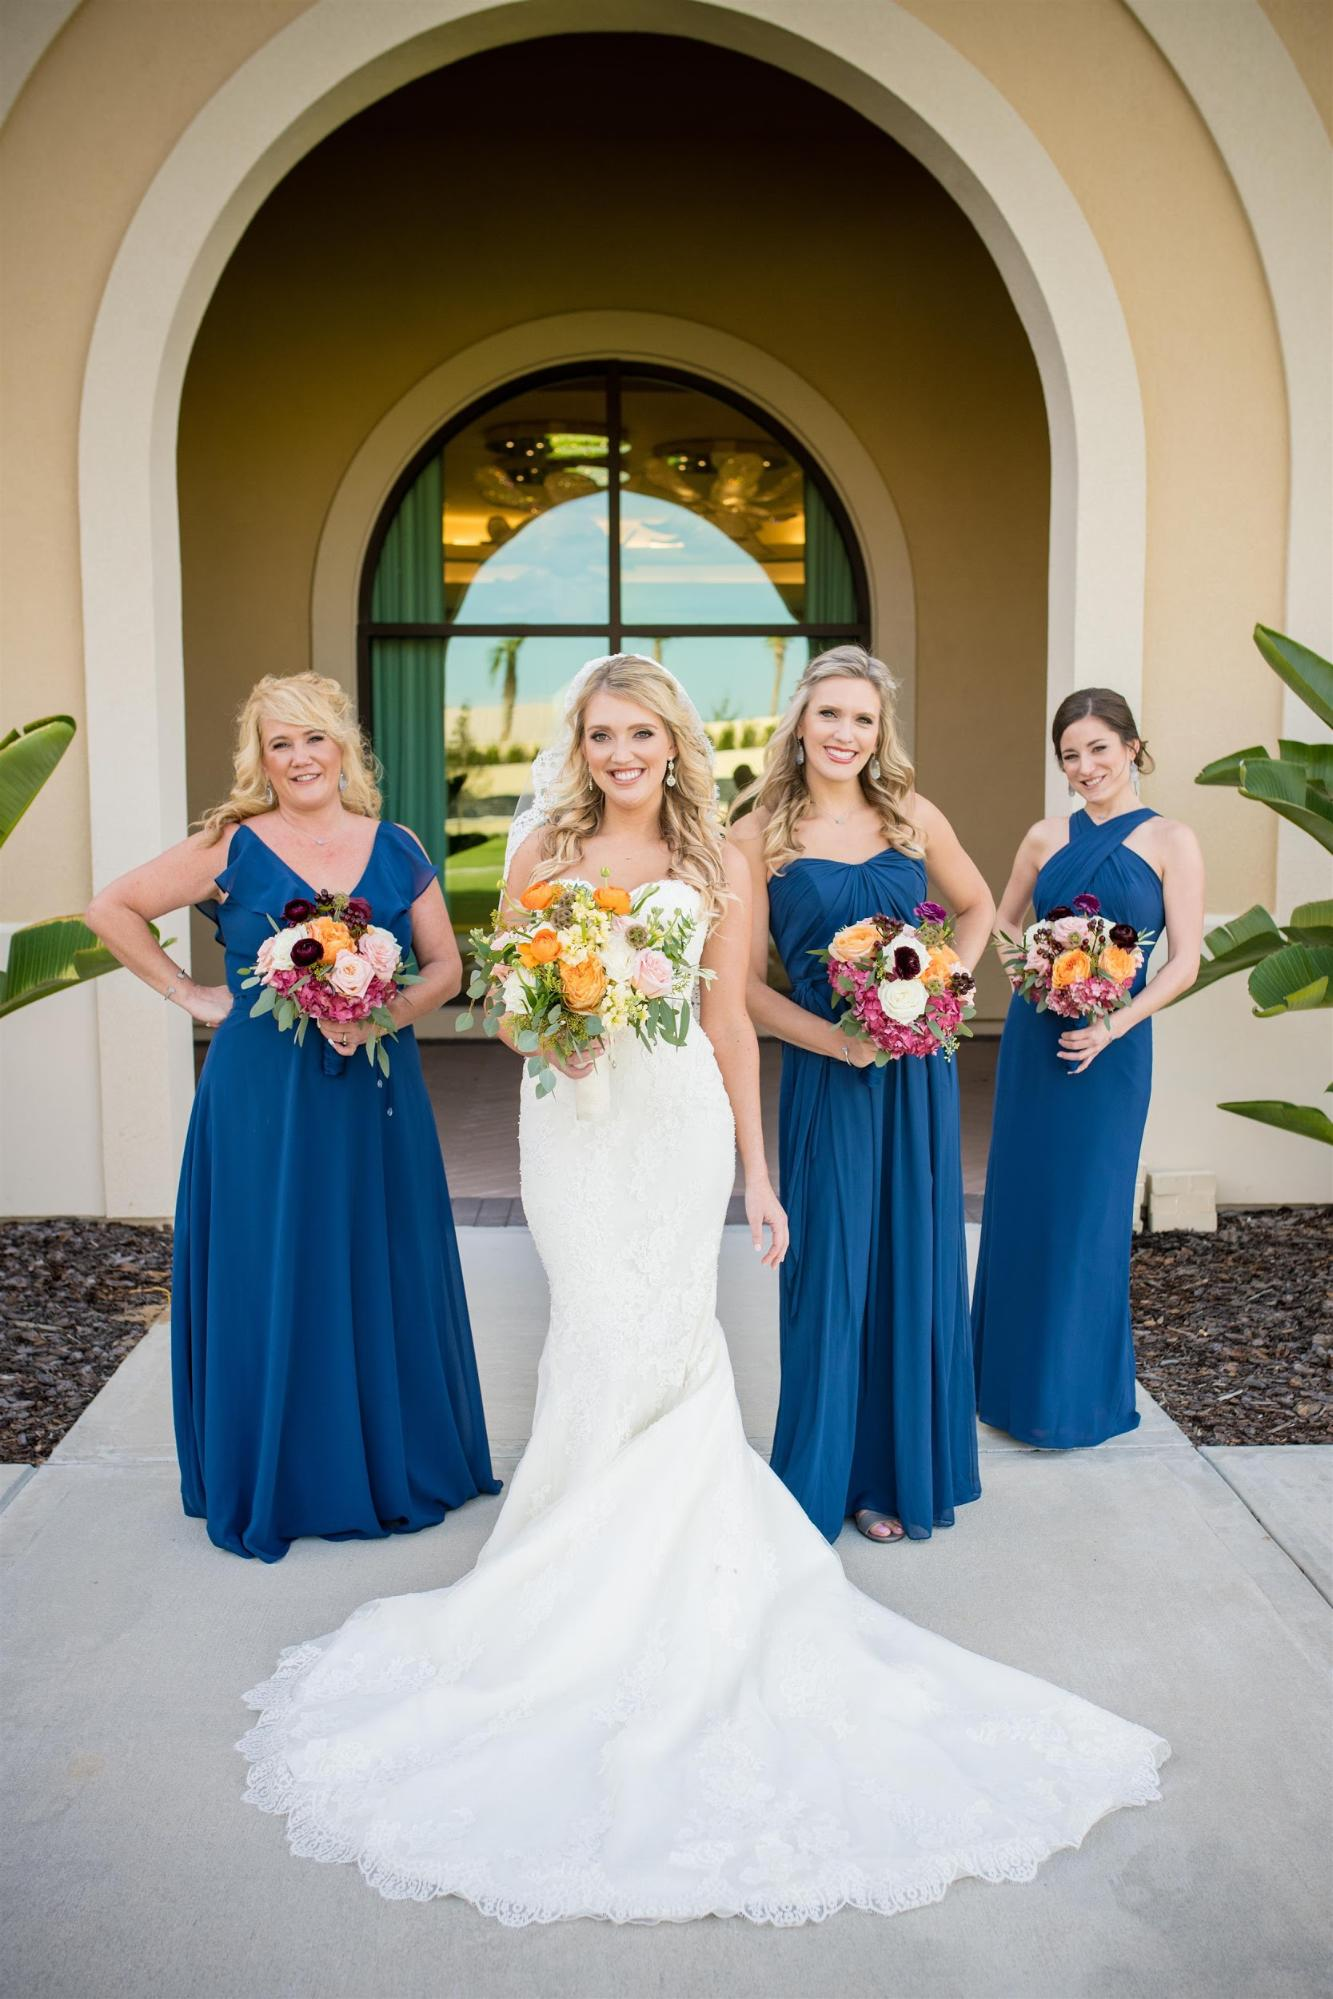 Not keen on a big, expensive wedding? We don't blame you one bit. Learn how to plan a small wedding that keeps the guest count low and the wow factor high! Dessy Real Wedding Photo by William Arthur Photography | Royal Blue Bridesmaid Dresses | Classic Blue Wedding